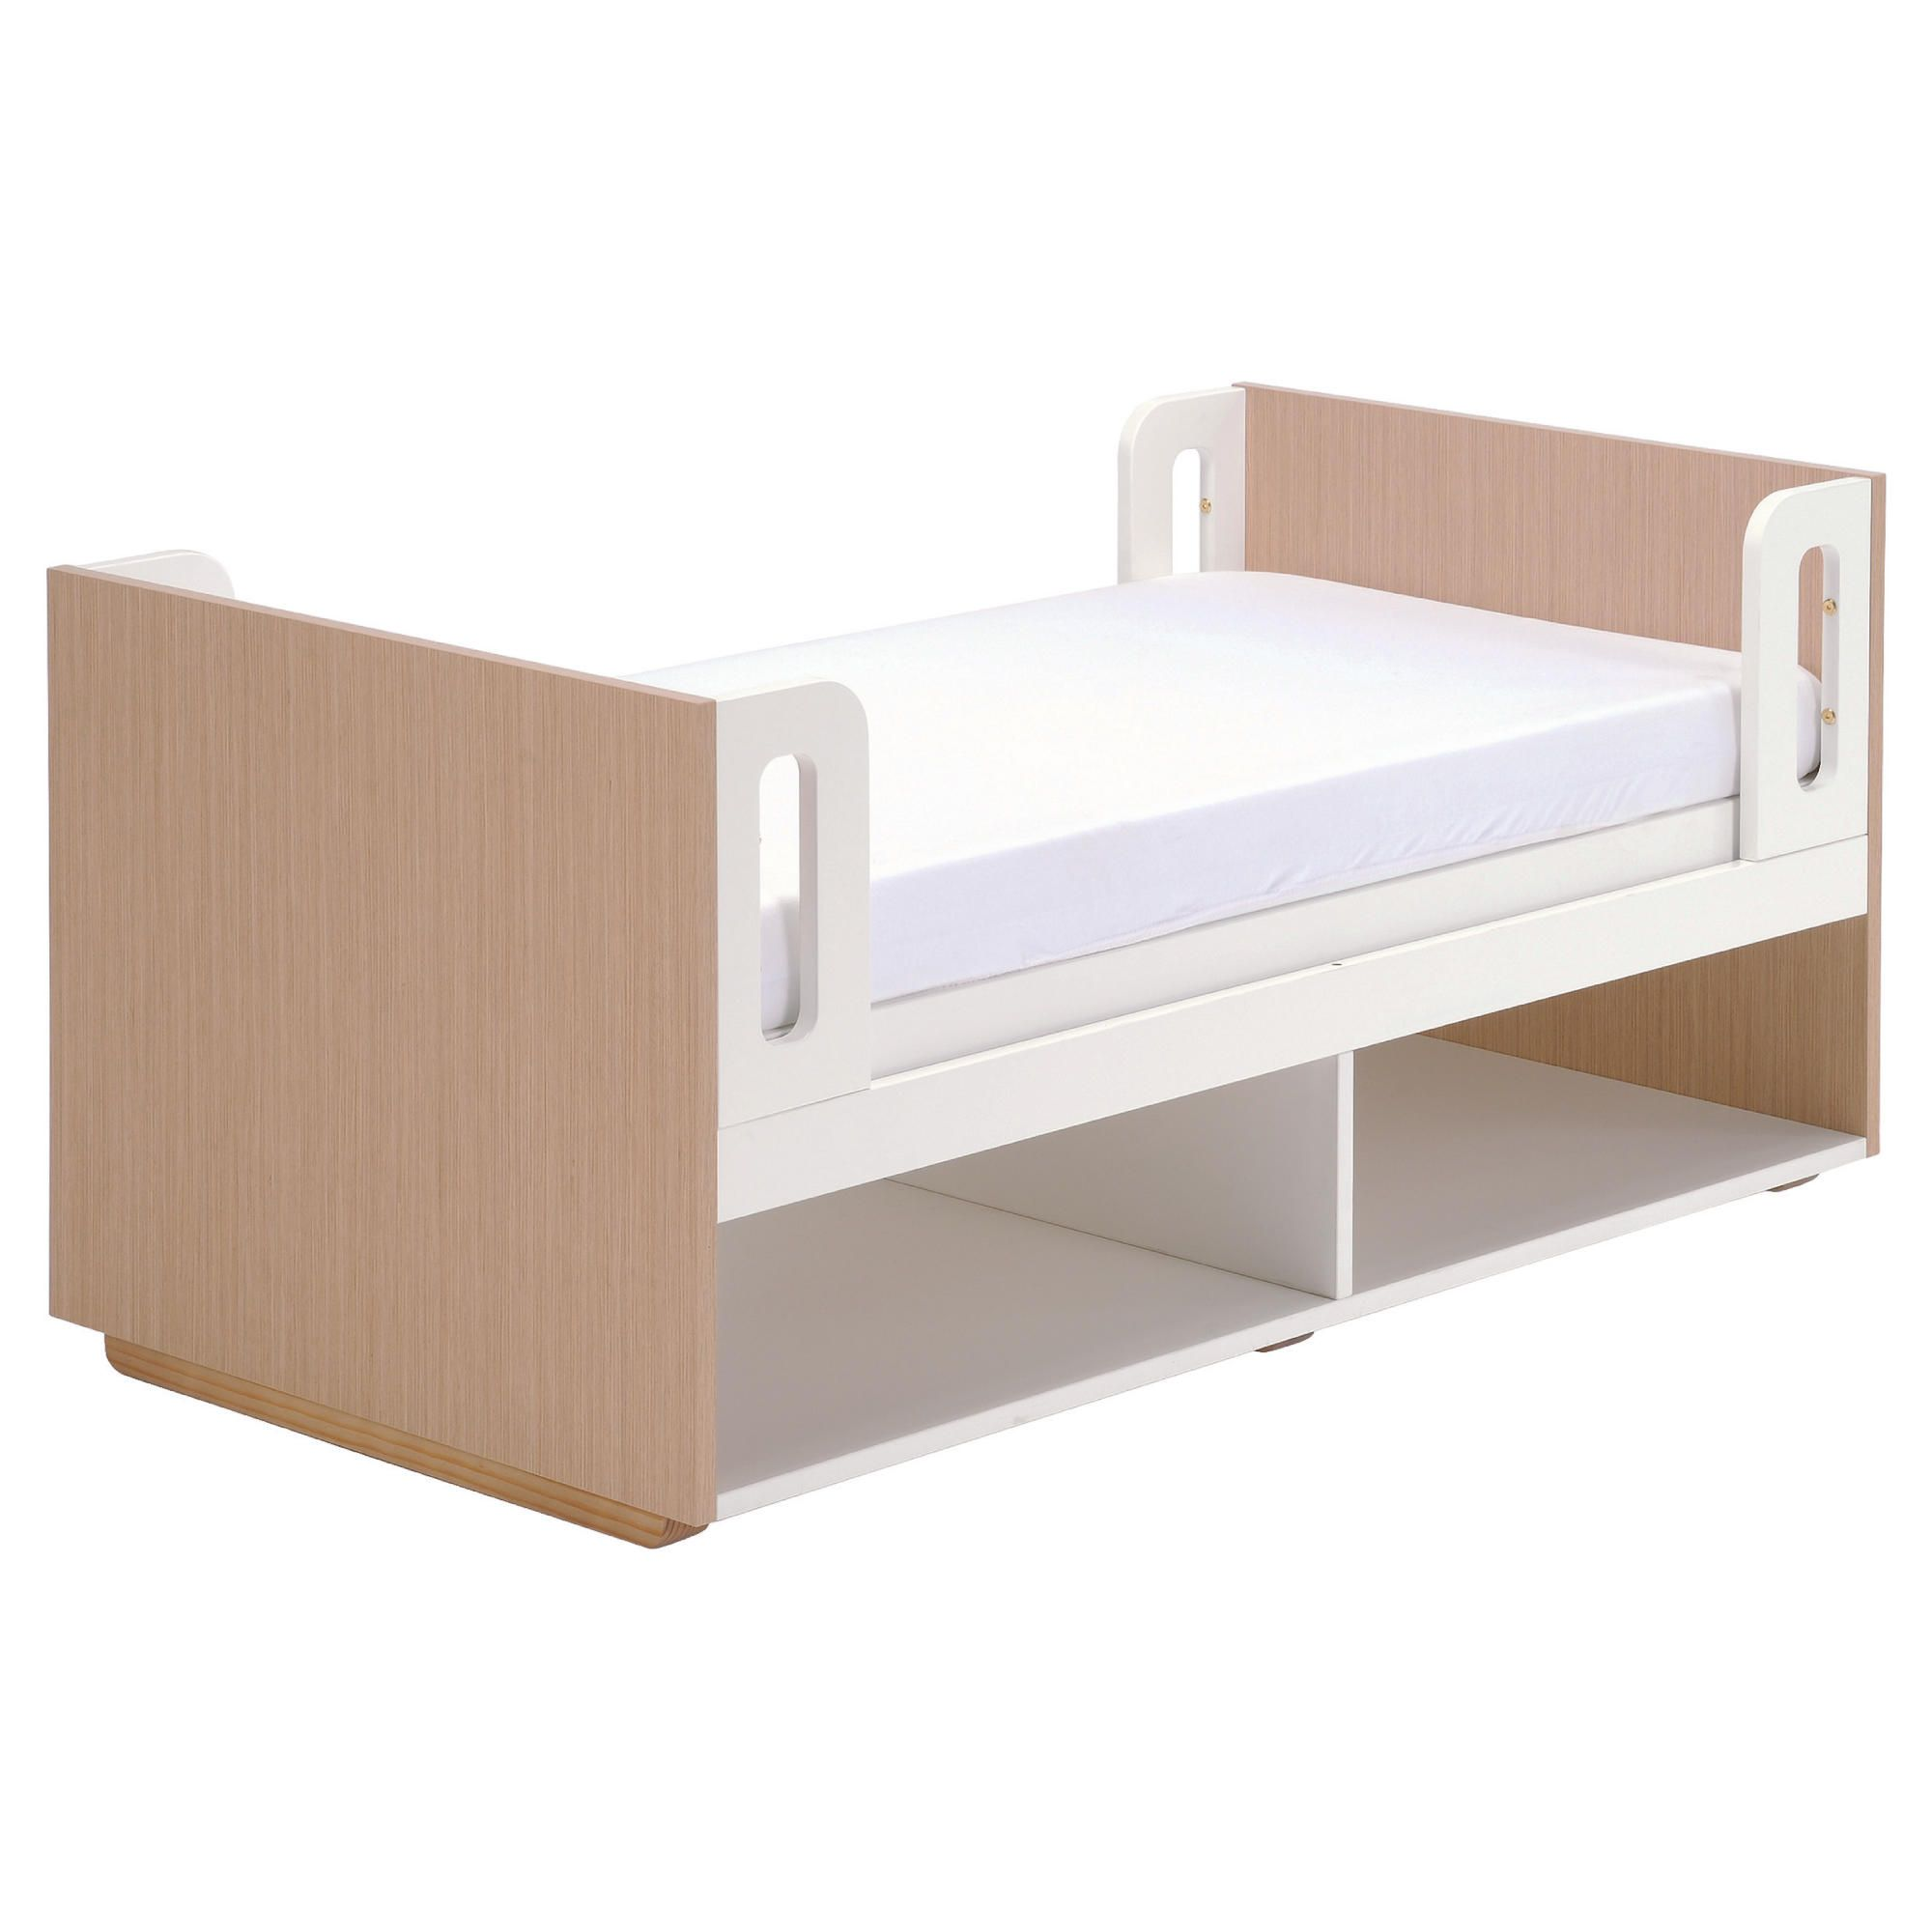 East Coast Nursery Monza Cot Bed at Tesco Direct